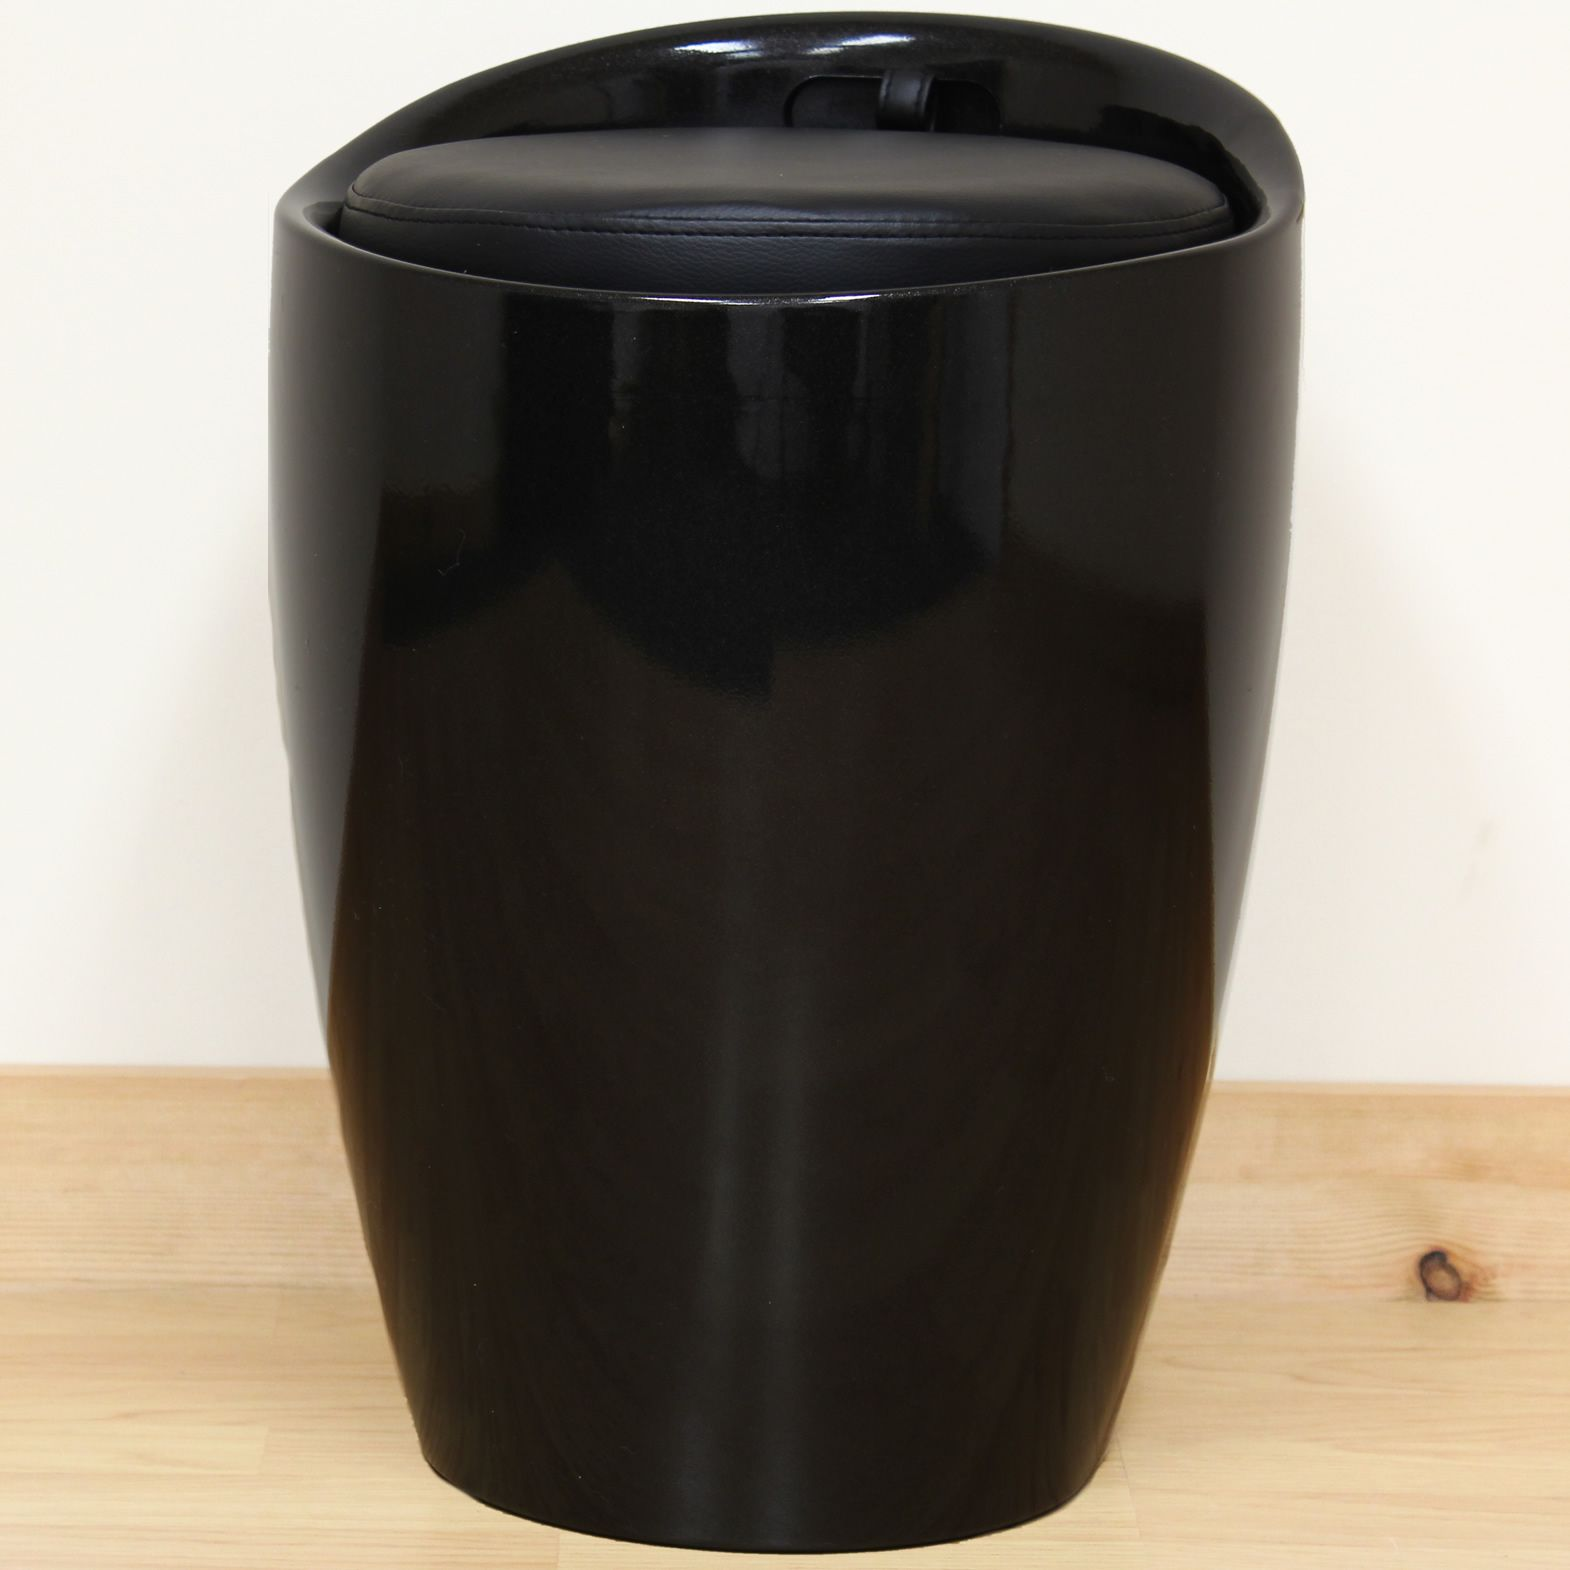 Faux Leather Wizard Ottoman Hidden Storage Stool/ - Details About Black ABS & Faux Leather Ottoman Hidden Storage